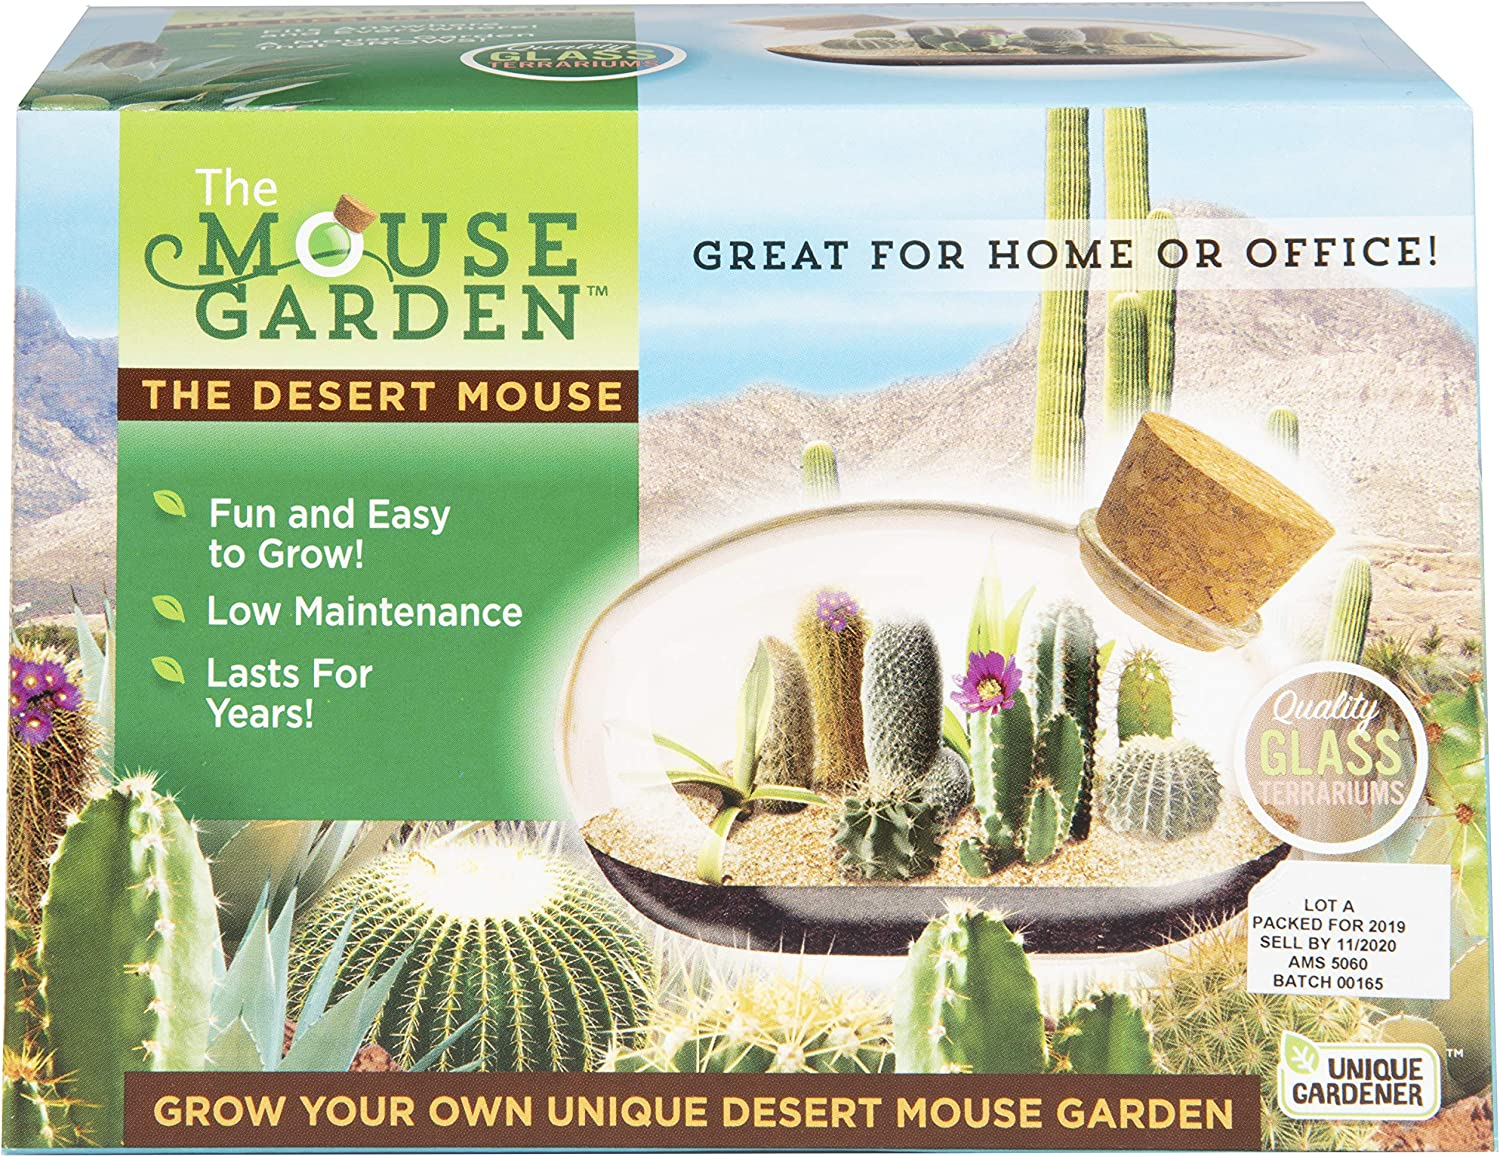 Mini Office Cactus Terrarium - The Desert Mouse Tiny Garden - Fun to Grow, Low Maintenance - Perfect for The Office Or Home Tabletop.